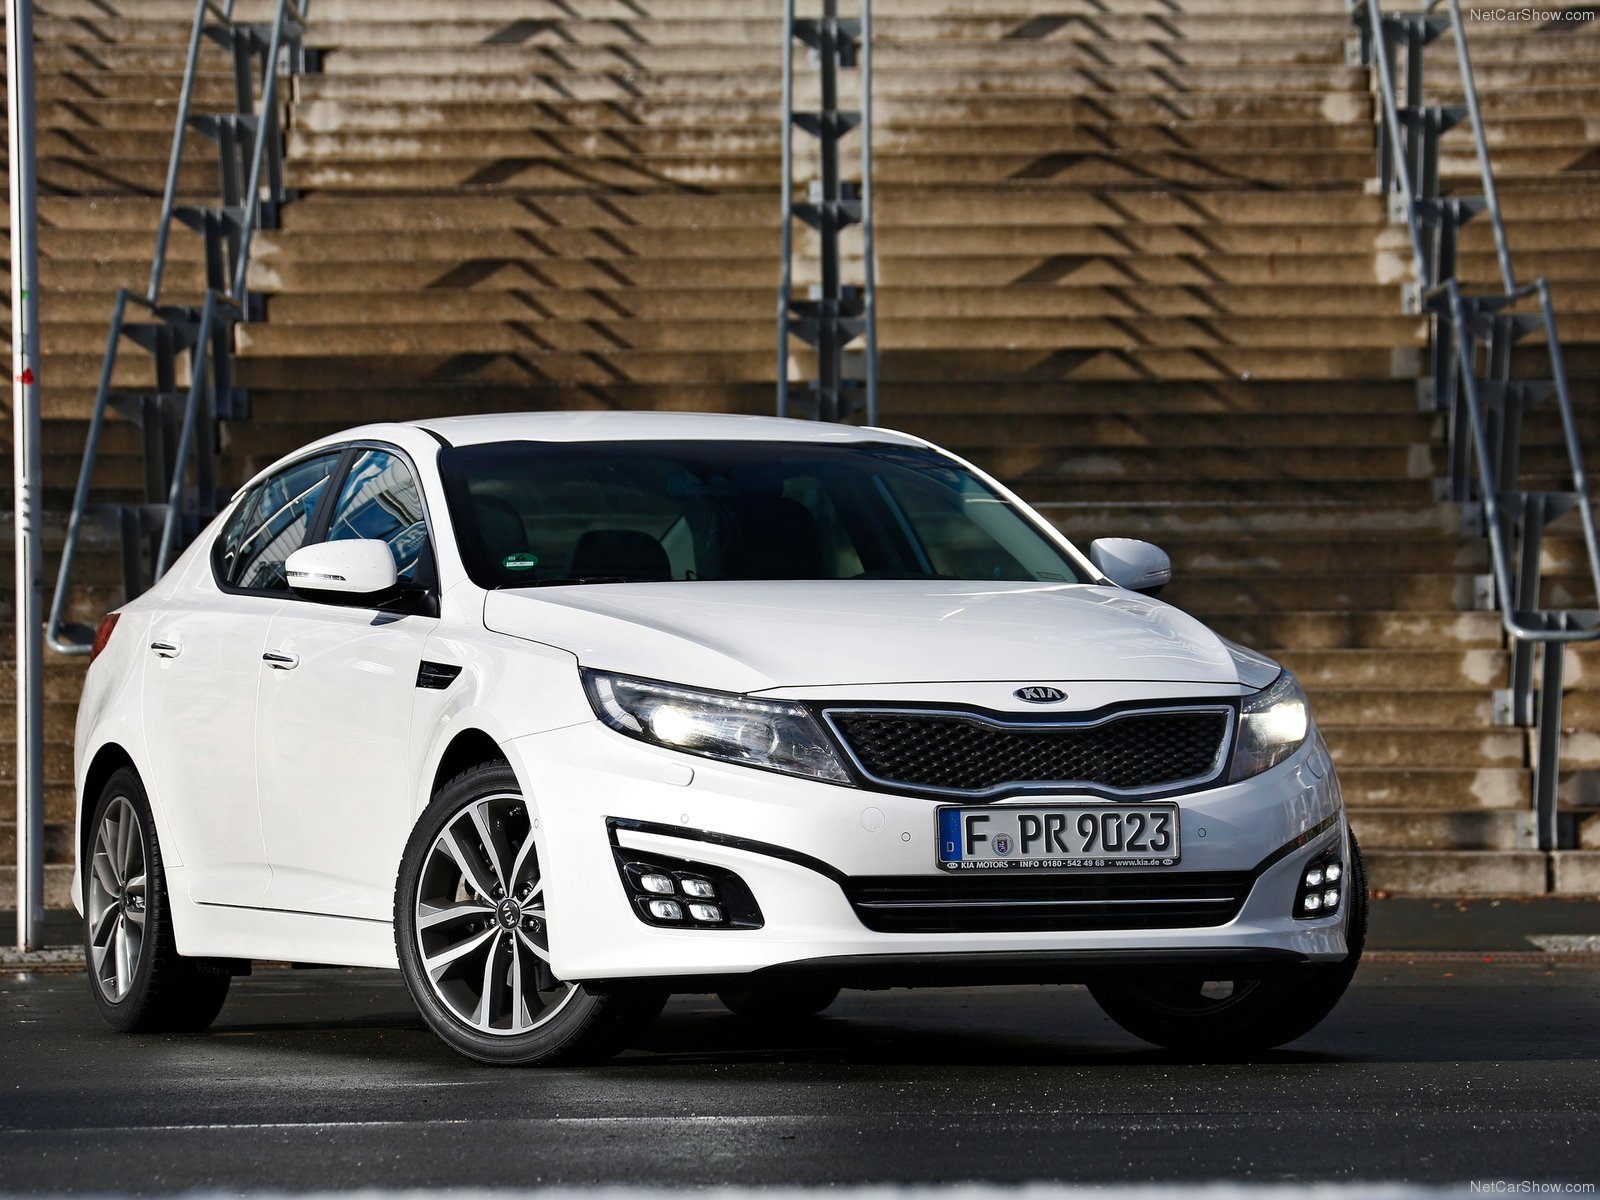 Kia Optima EU-Version photo 115237